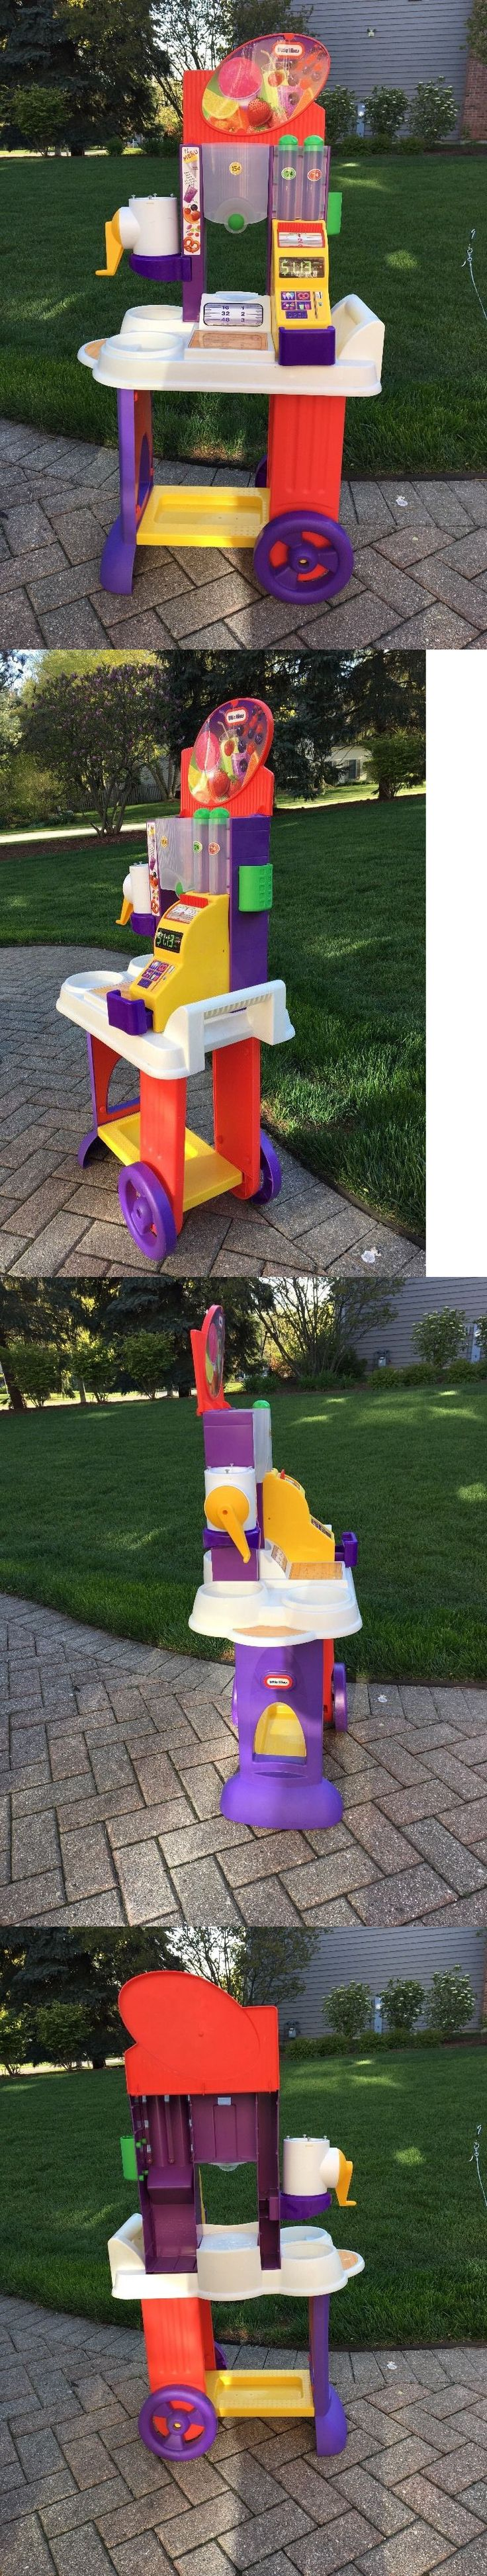 Child Size 2574: Little Tikes Snack N Snow Cones Cart - Very Htf - Rare! -> BUY IT NOW ONLY: $38.95 on eBay!